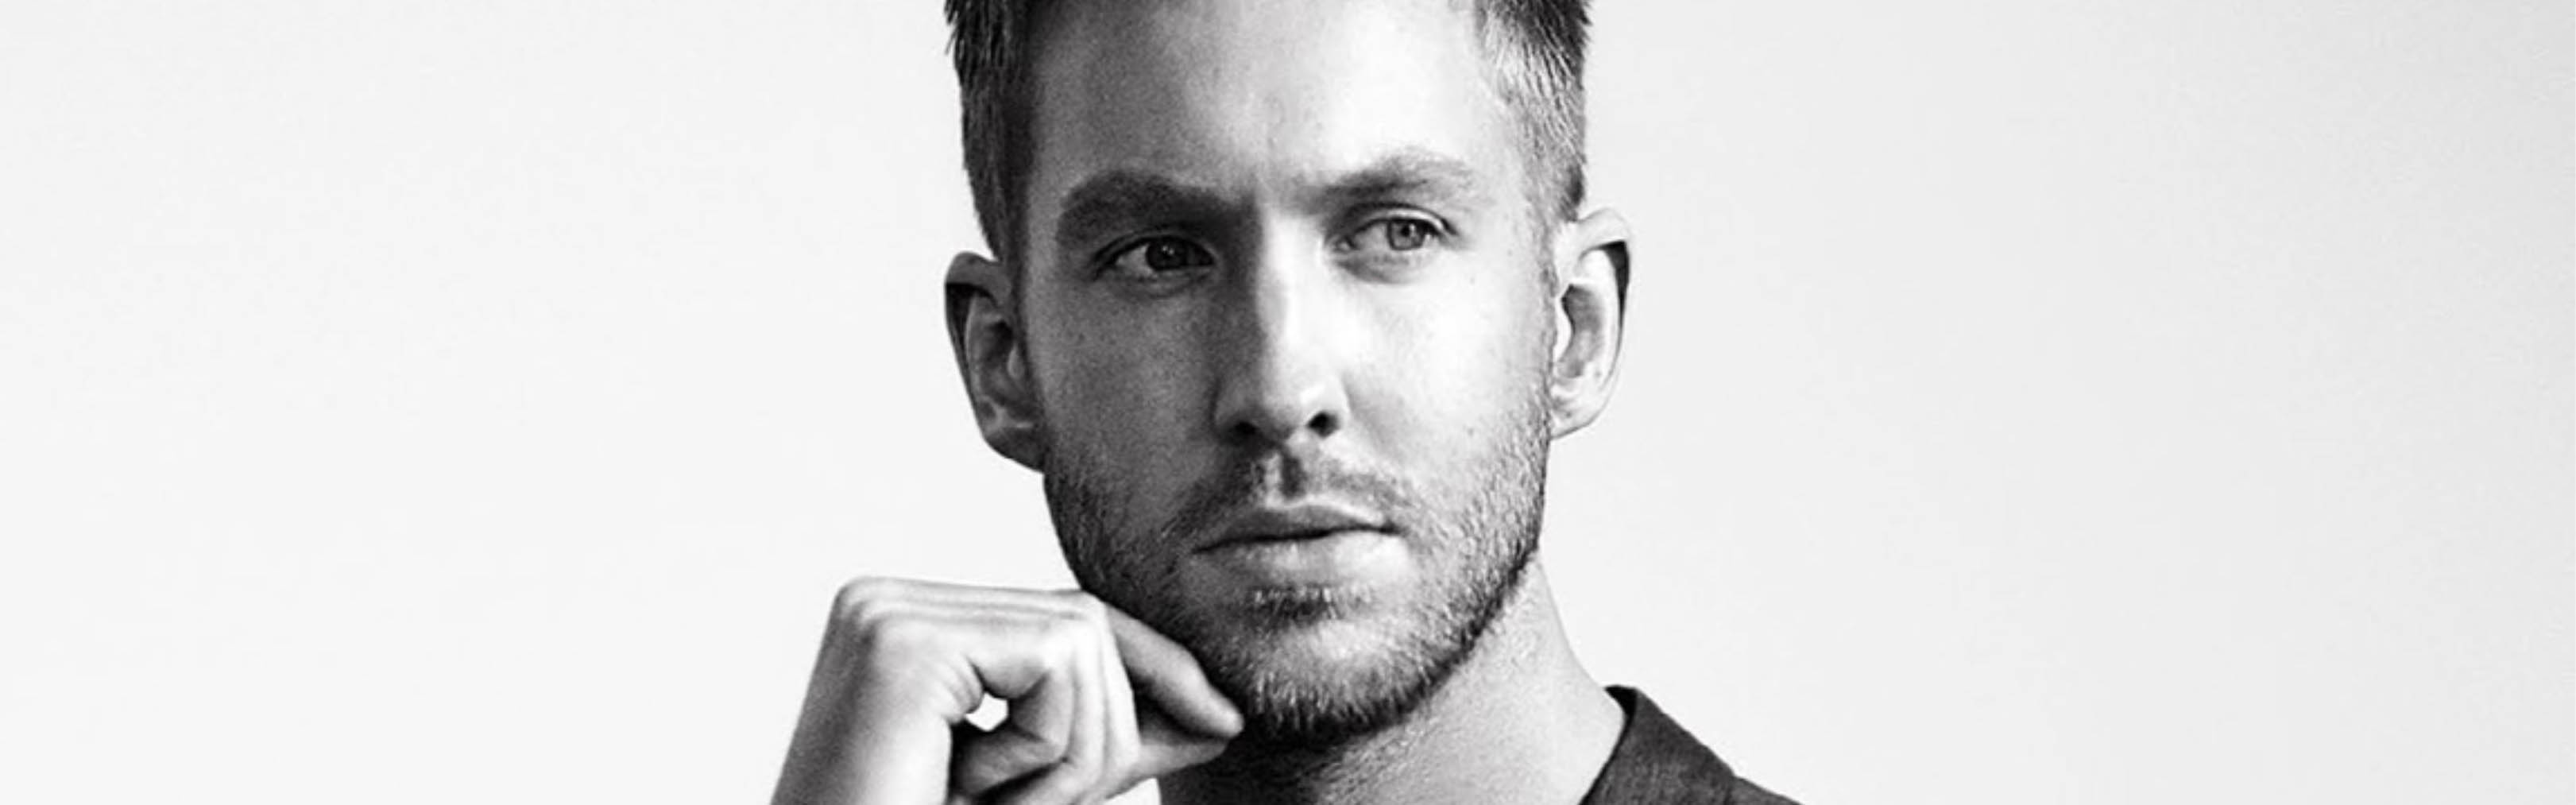 Calvin-Harris-4K-Wallpapers